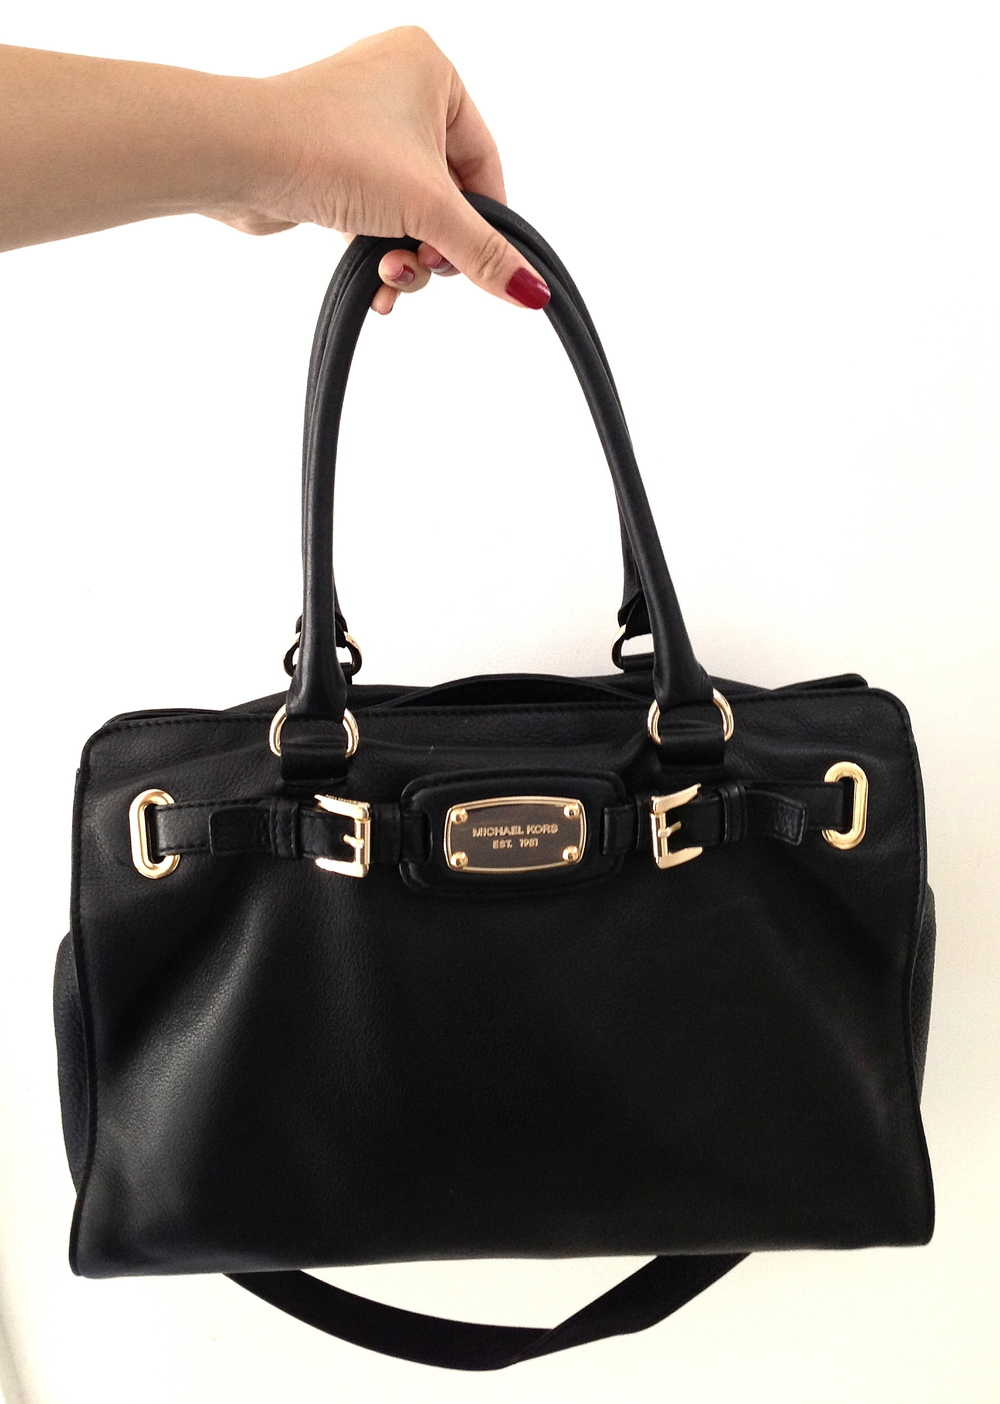 Michael Kors Hamilton East/West Leather Tote